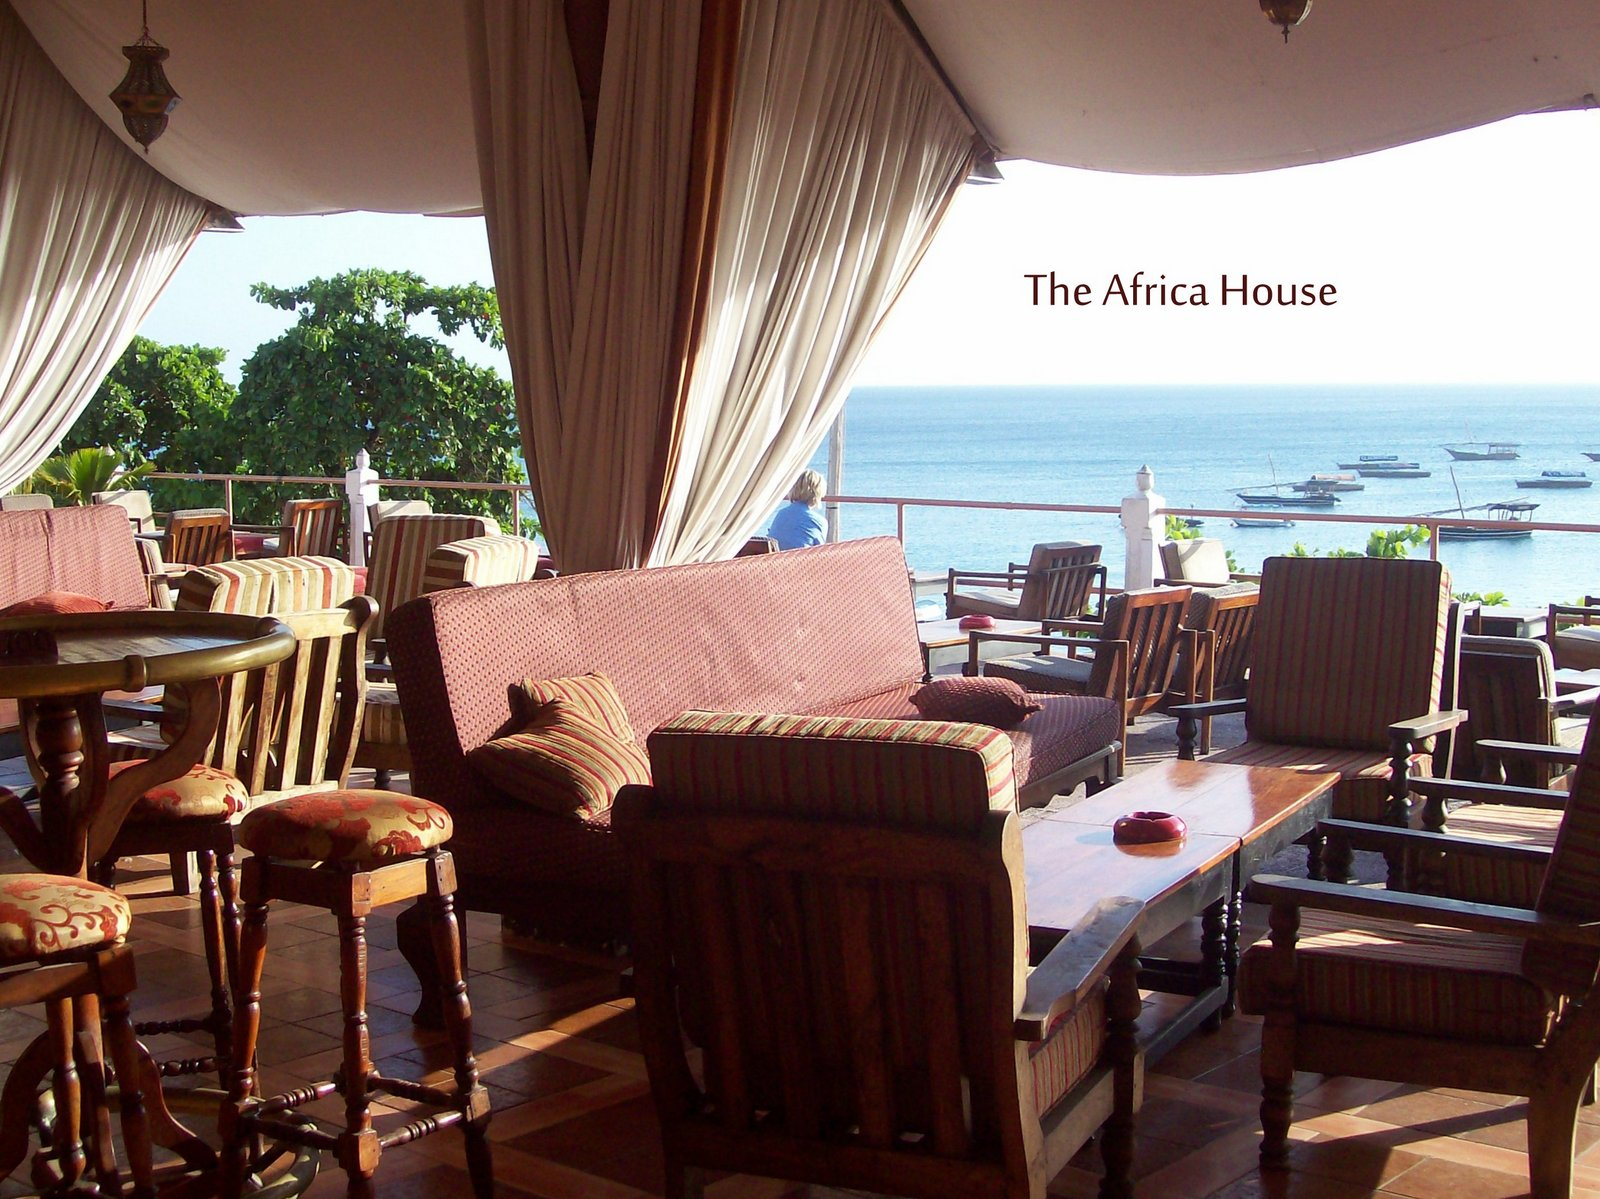 The Africa House in Stone Town